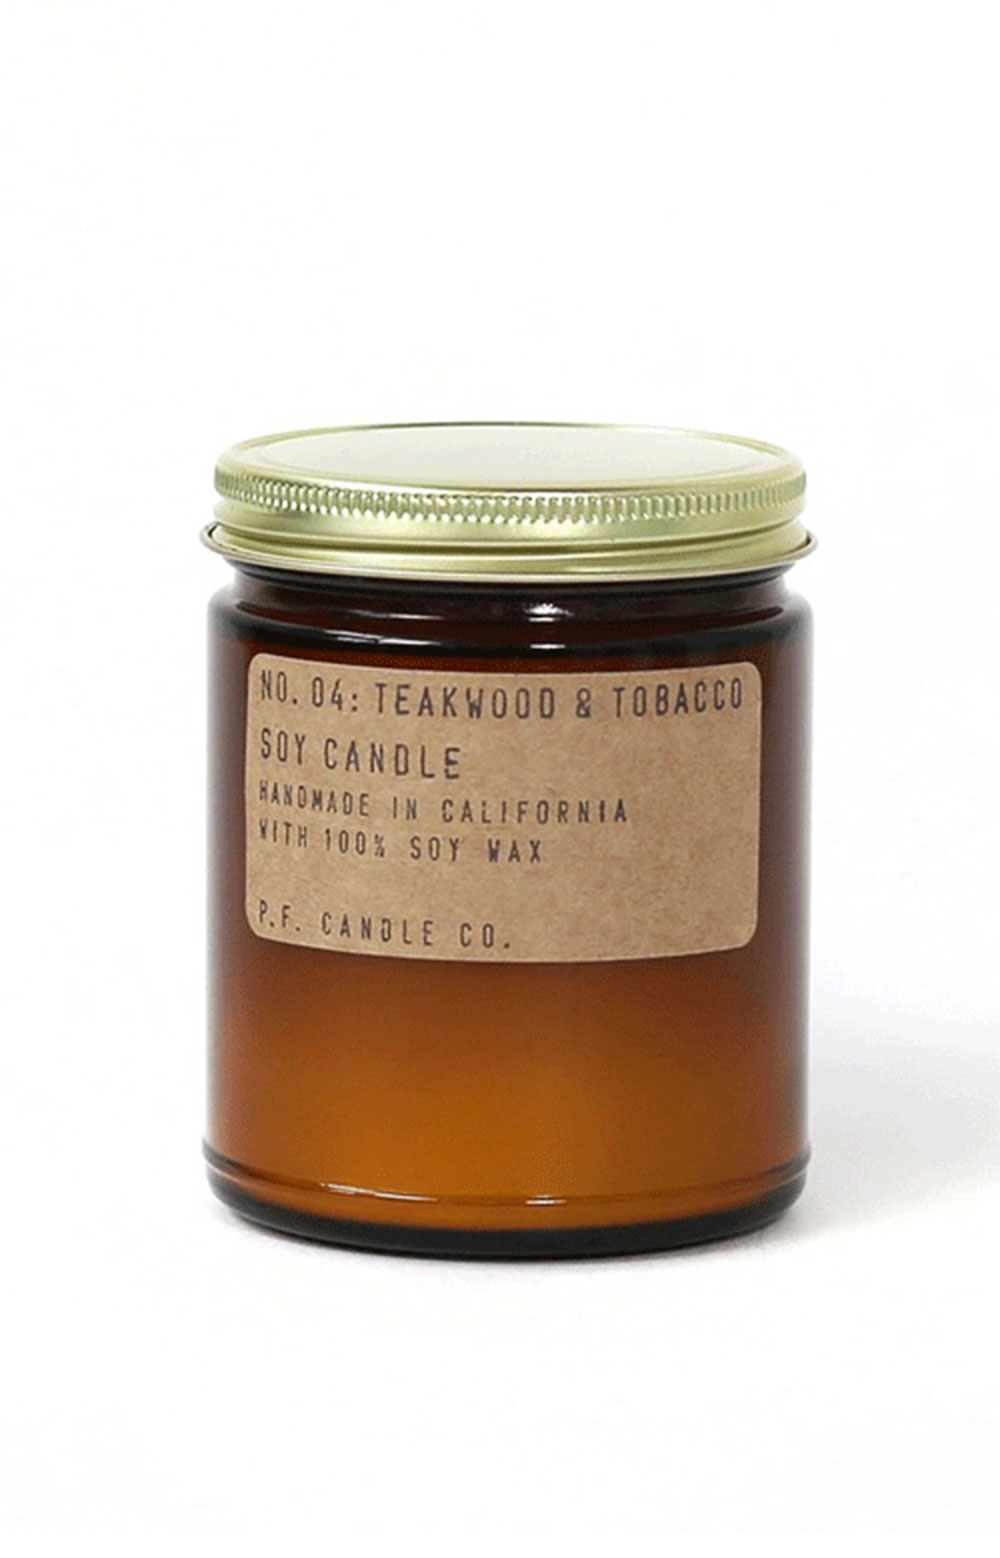 Teakwood & Tobacco Soy Candle - 7.2 Oz